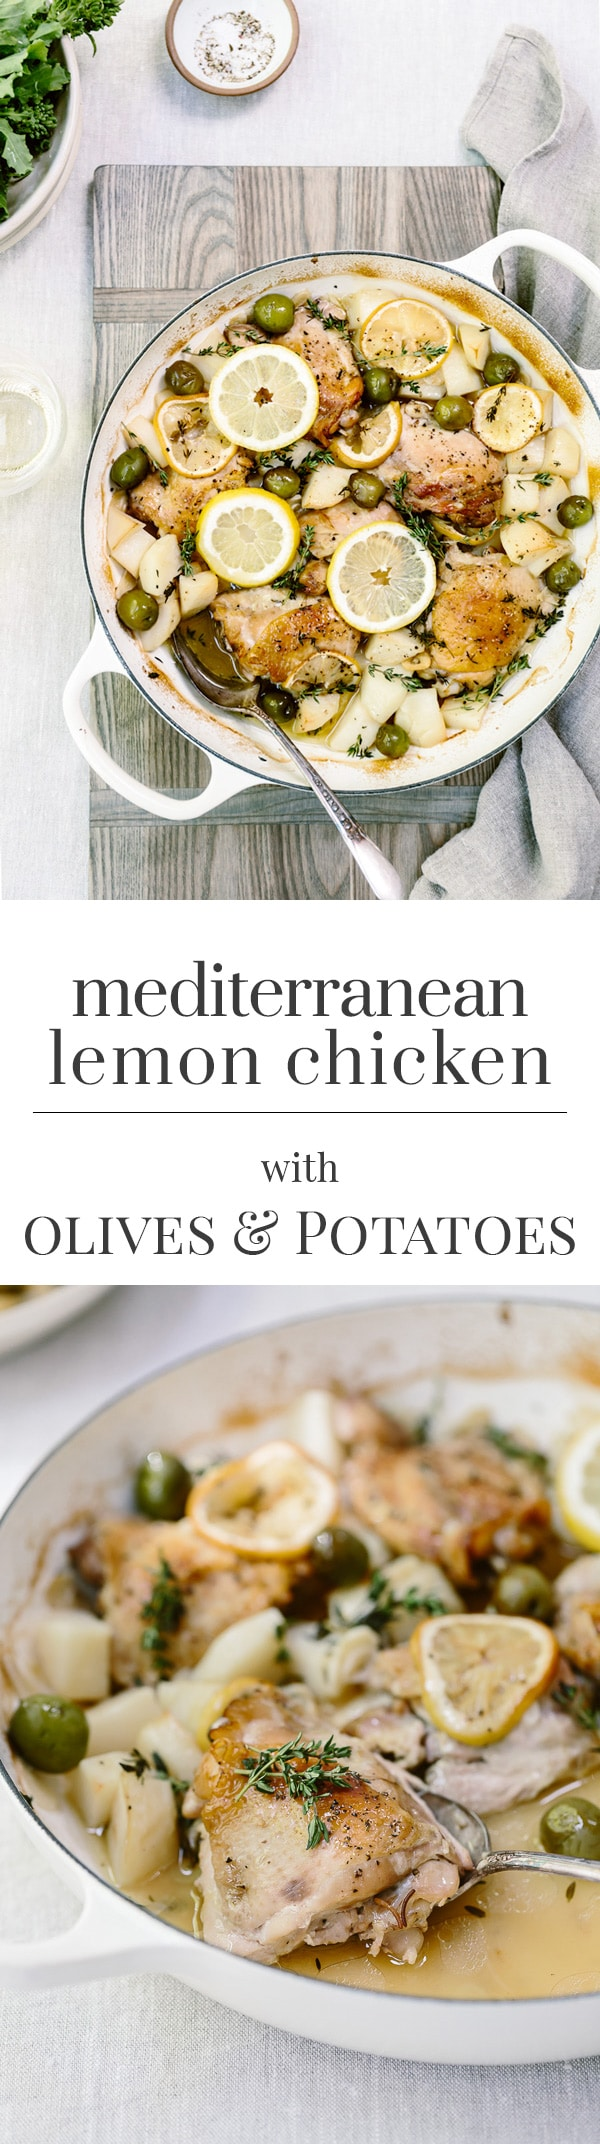 Recipe for Mediterranean Lemon Chicken with Olives and Potatoes - A one-pan weeknight chicken dinner made with lemon slices, olives and potatoes.